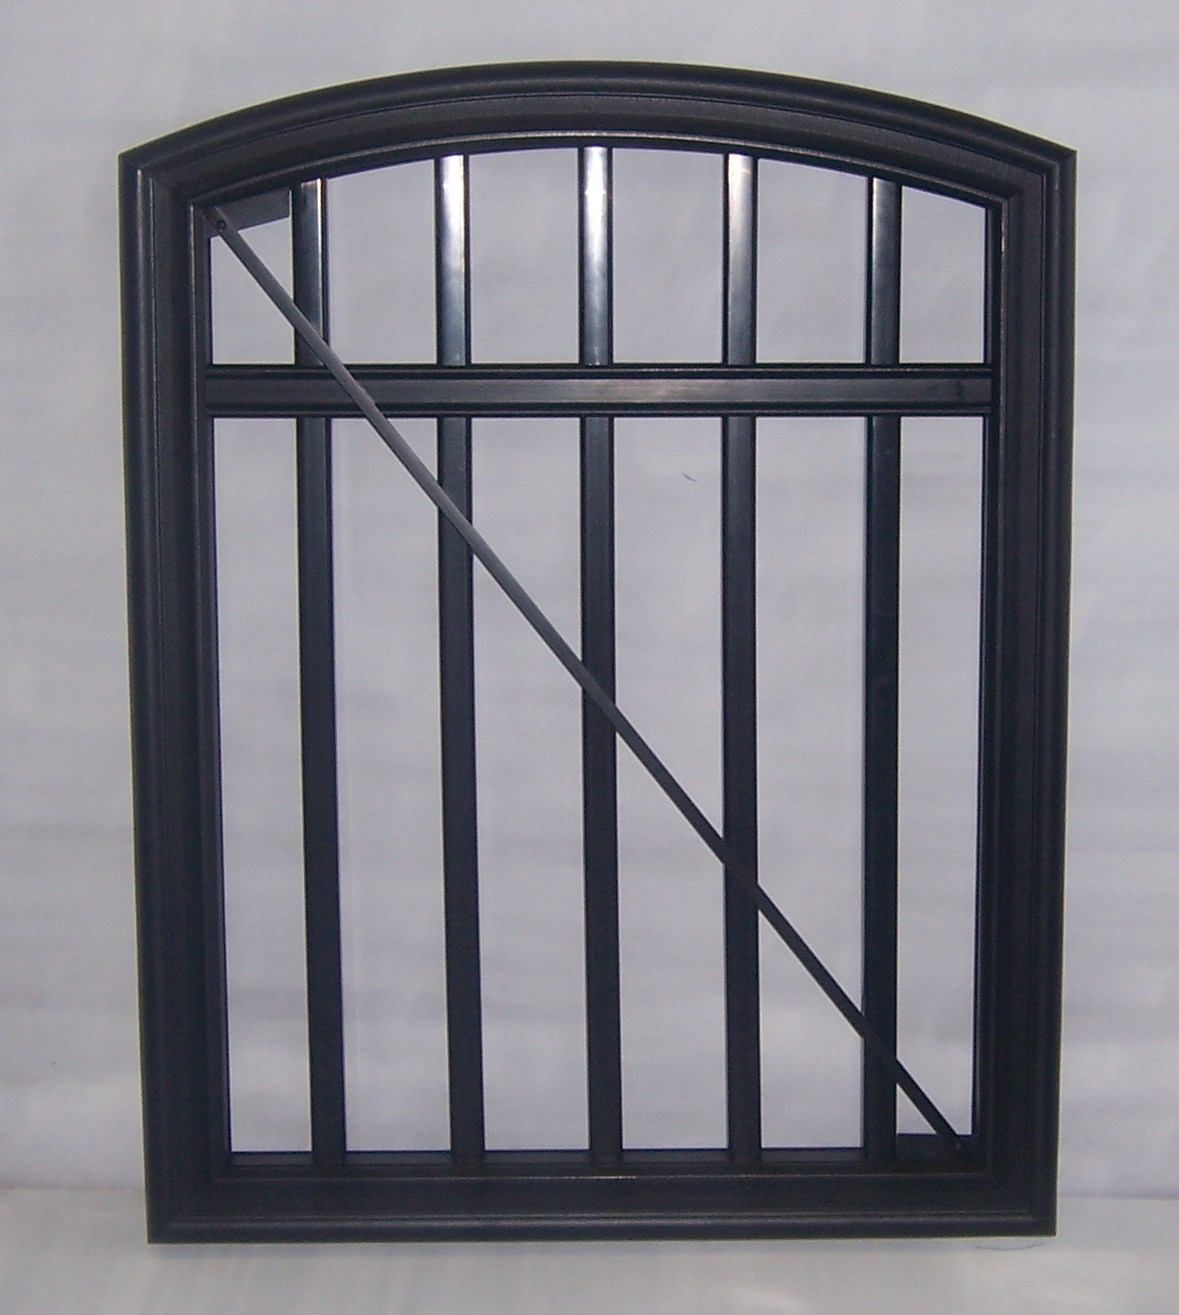 TimberTech RadianceRail Arch Top Gate with Midrail